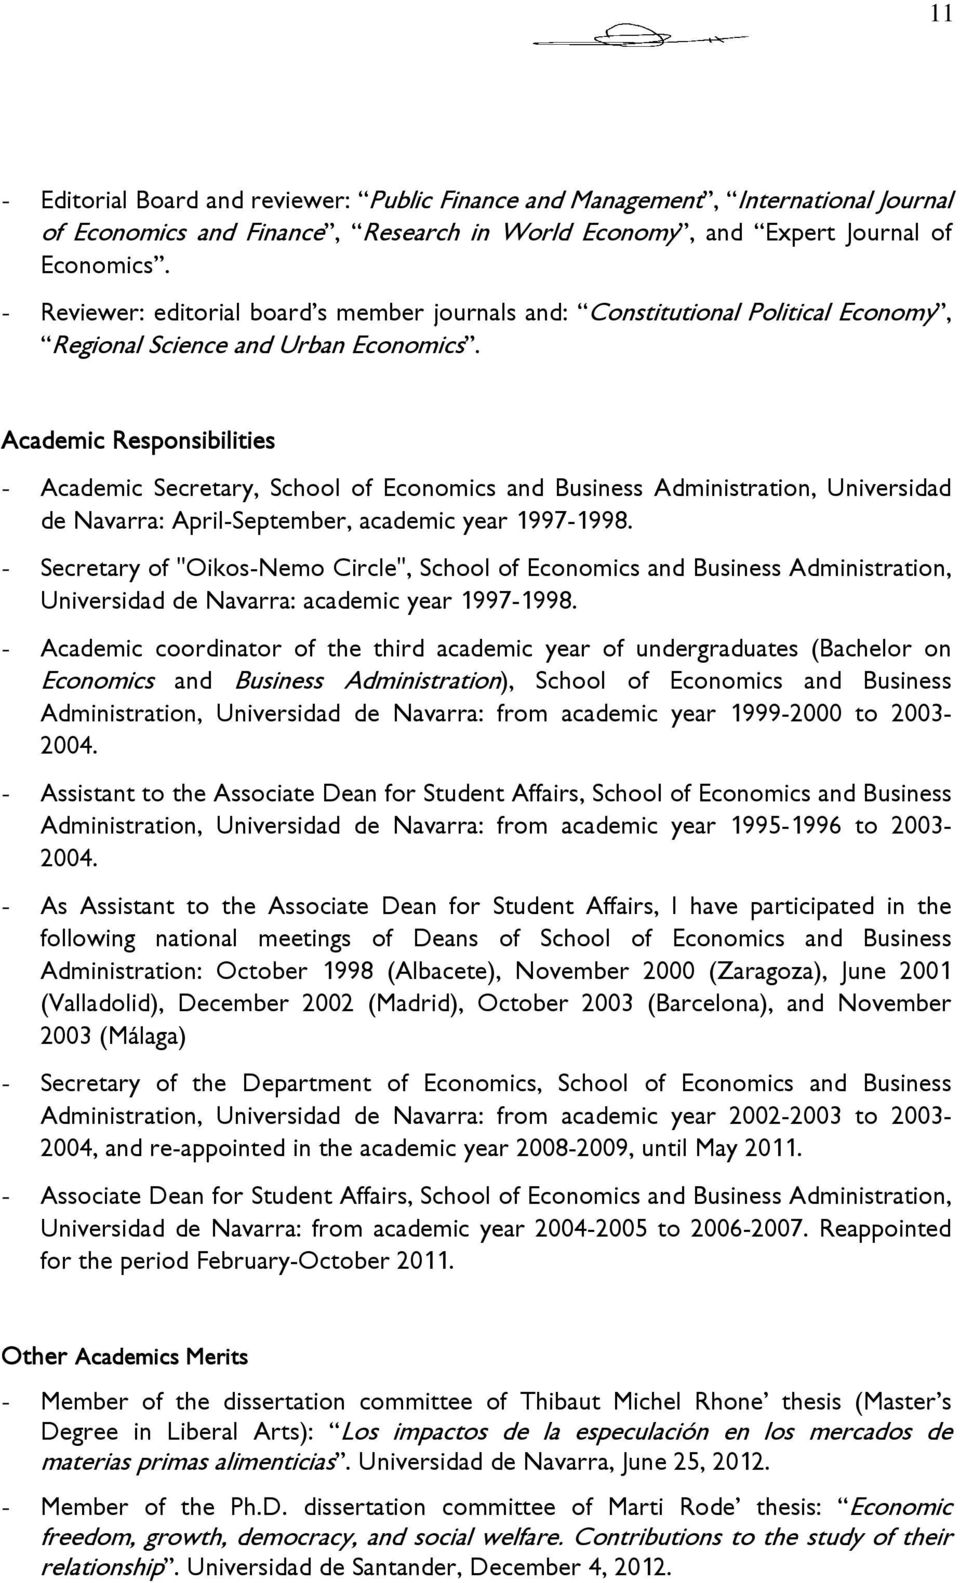 Academic Responsibilities - Academic Secretary, School of Economics and Business Administration, Universidad de Navarra: April-September, academic year 1997-1998.